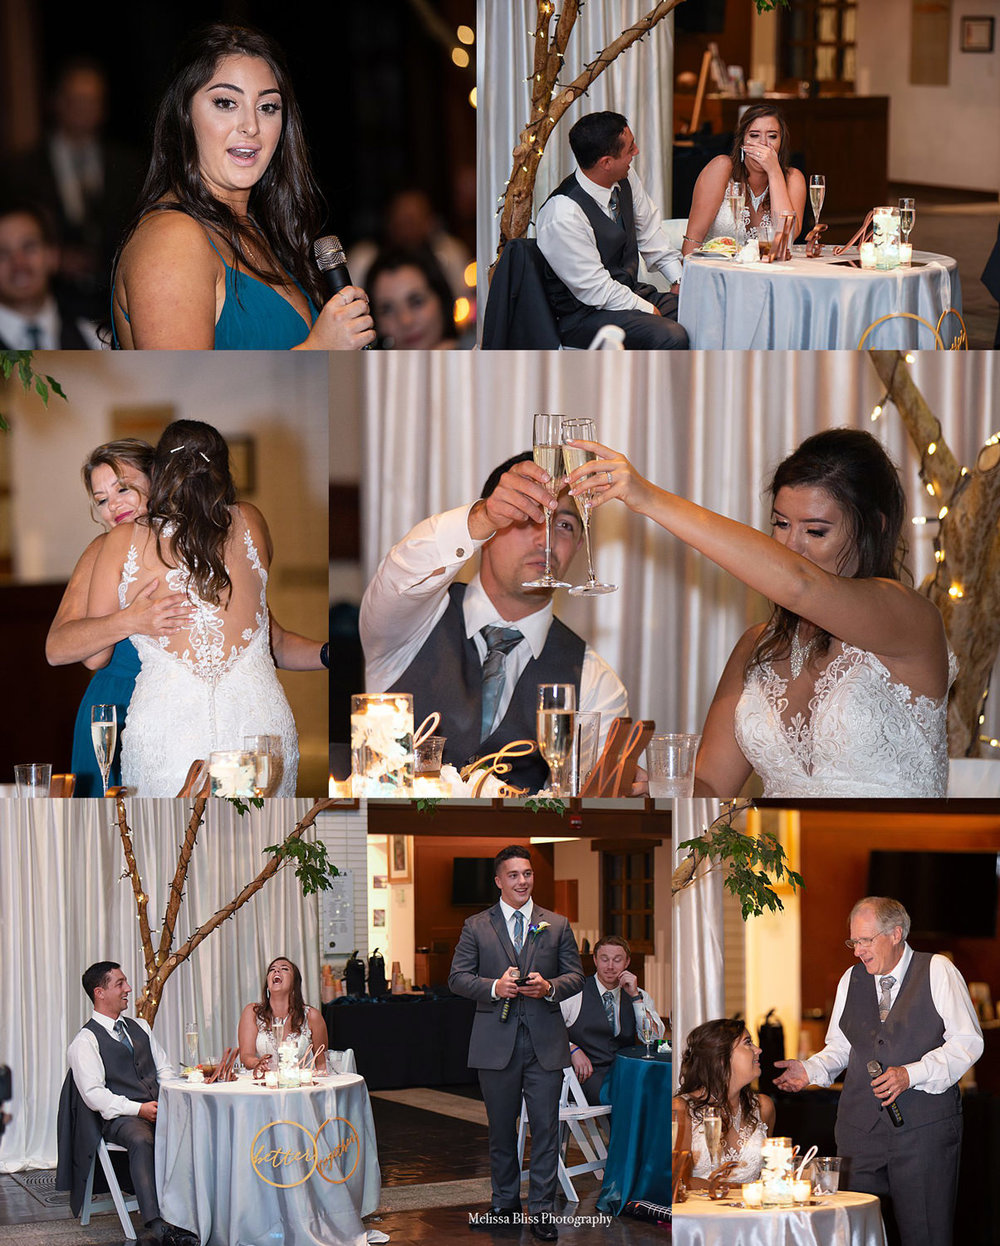 wedding-reception-toasts-MOCA-virginia-beach-melissa-bliss-photography-VA-wedding-photographer.jpg